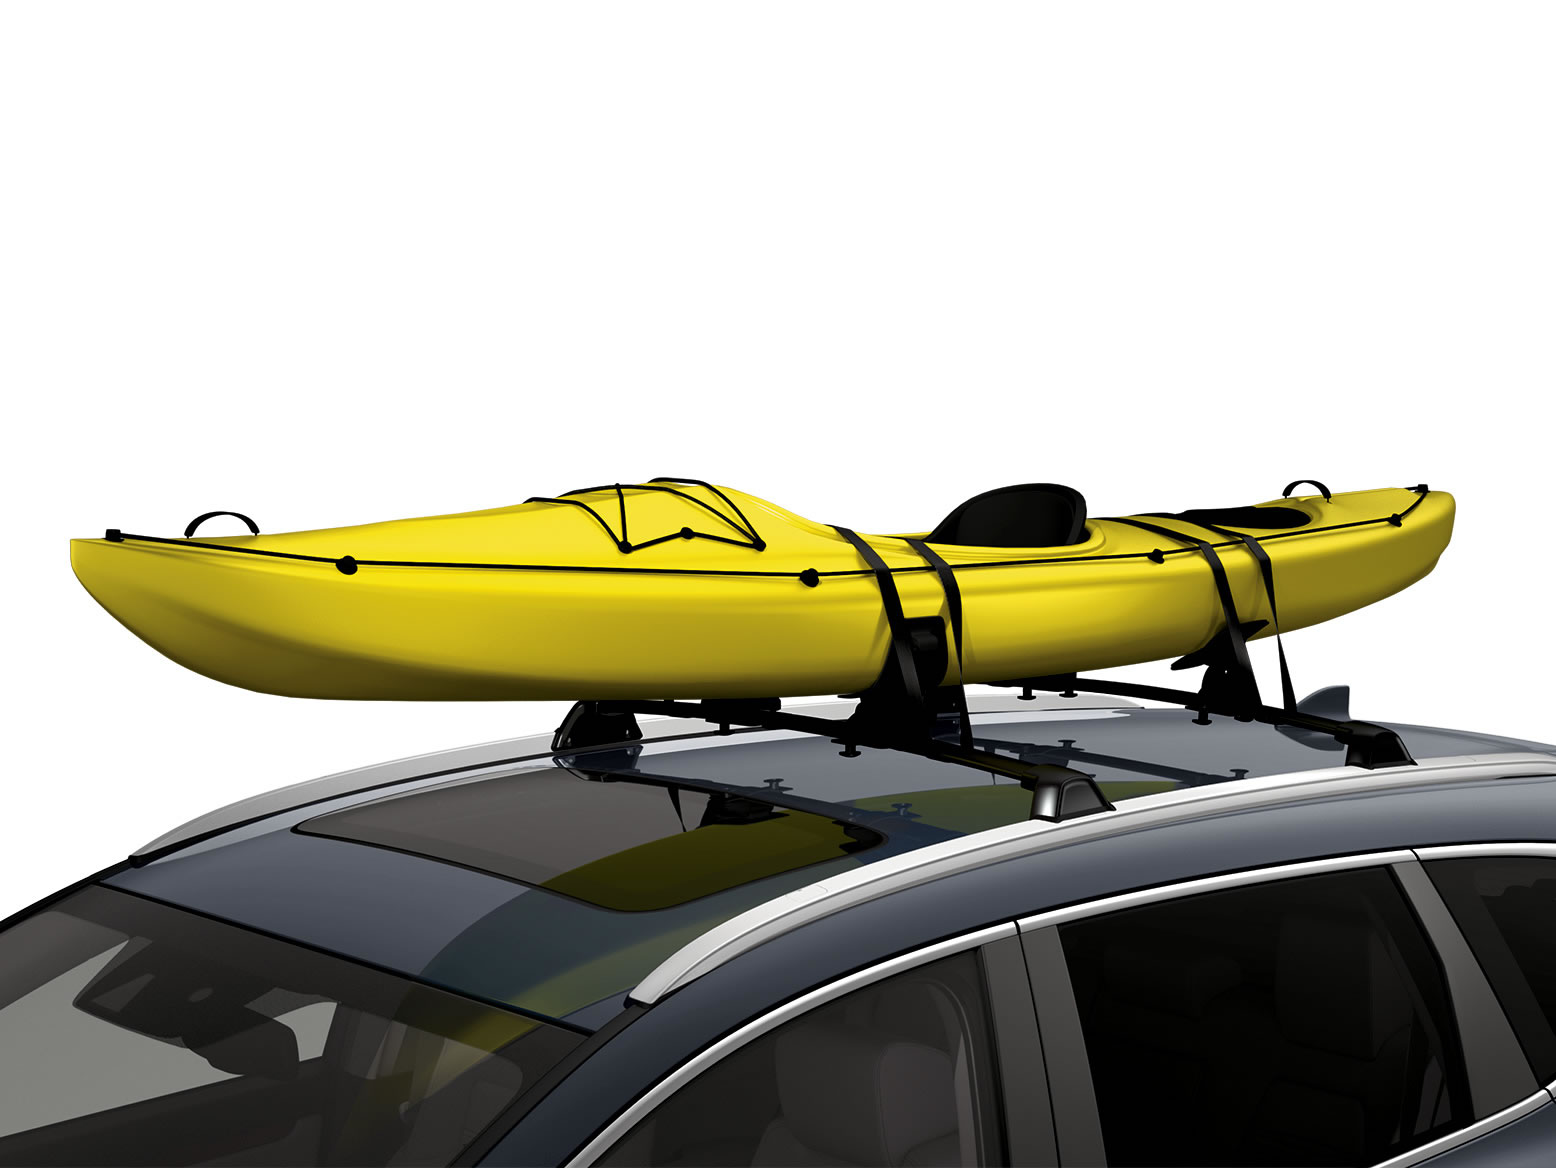 KAYAK ATTACHMNET (part number:)